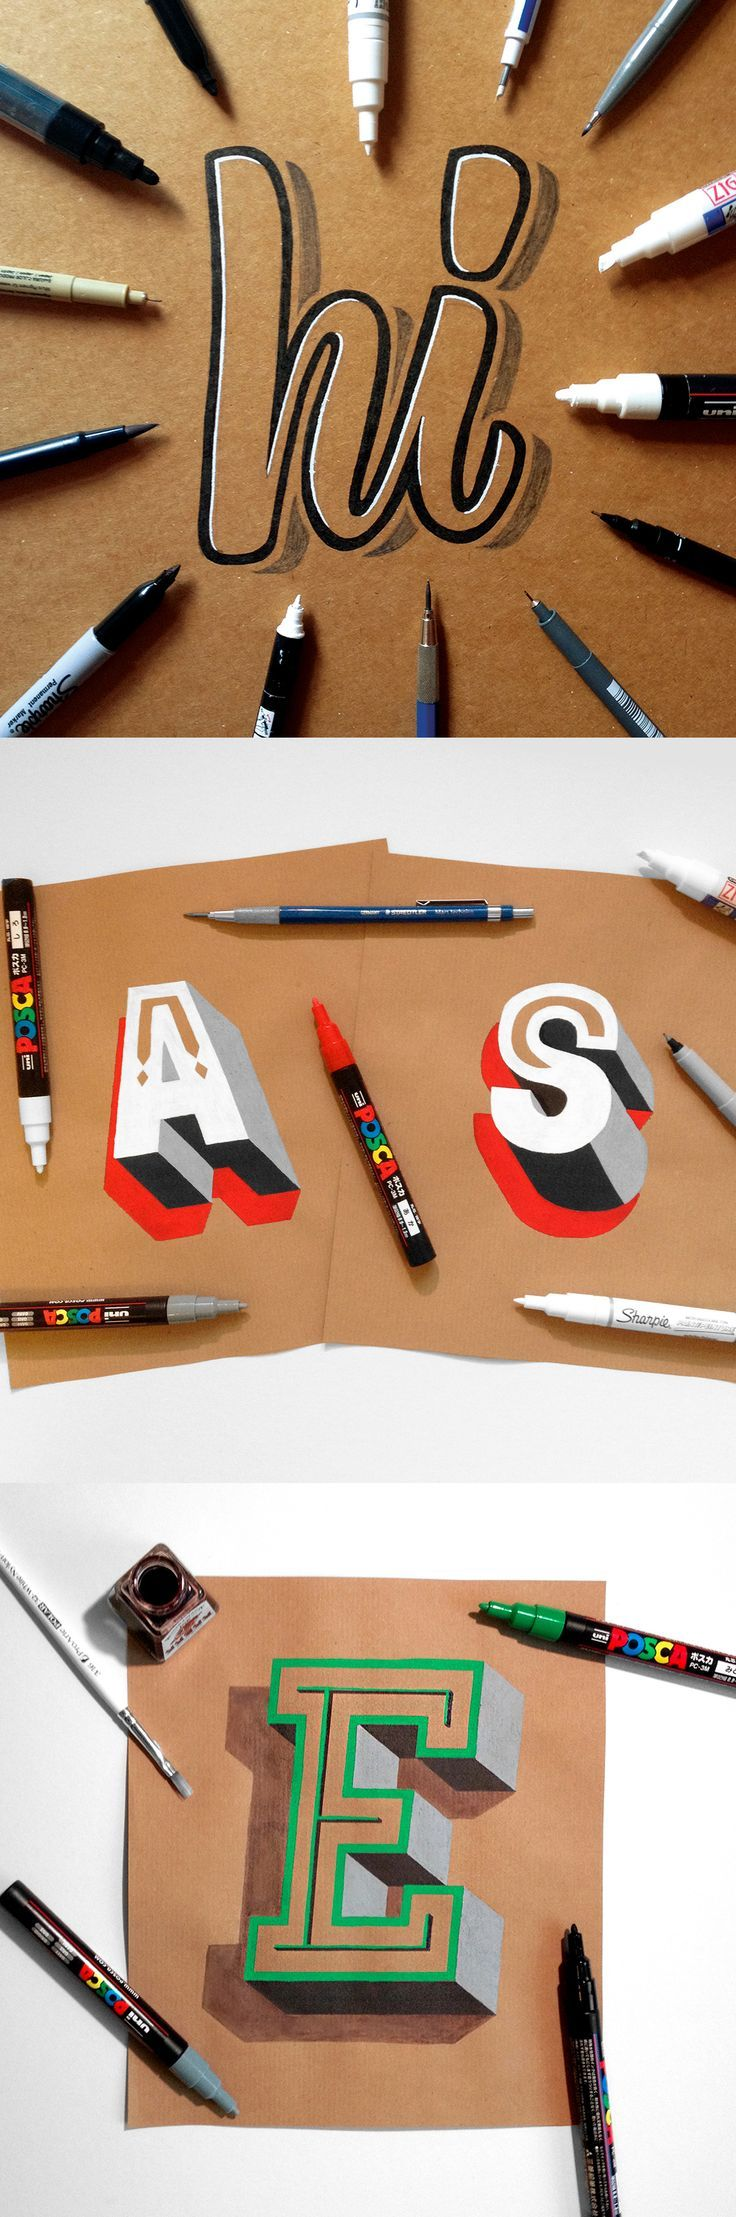 A collection of hand drawn typography on kraft paper by James Lewis and Ligature Collective.